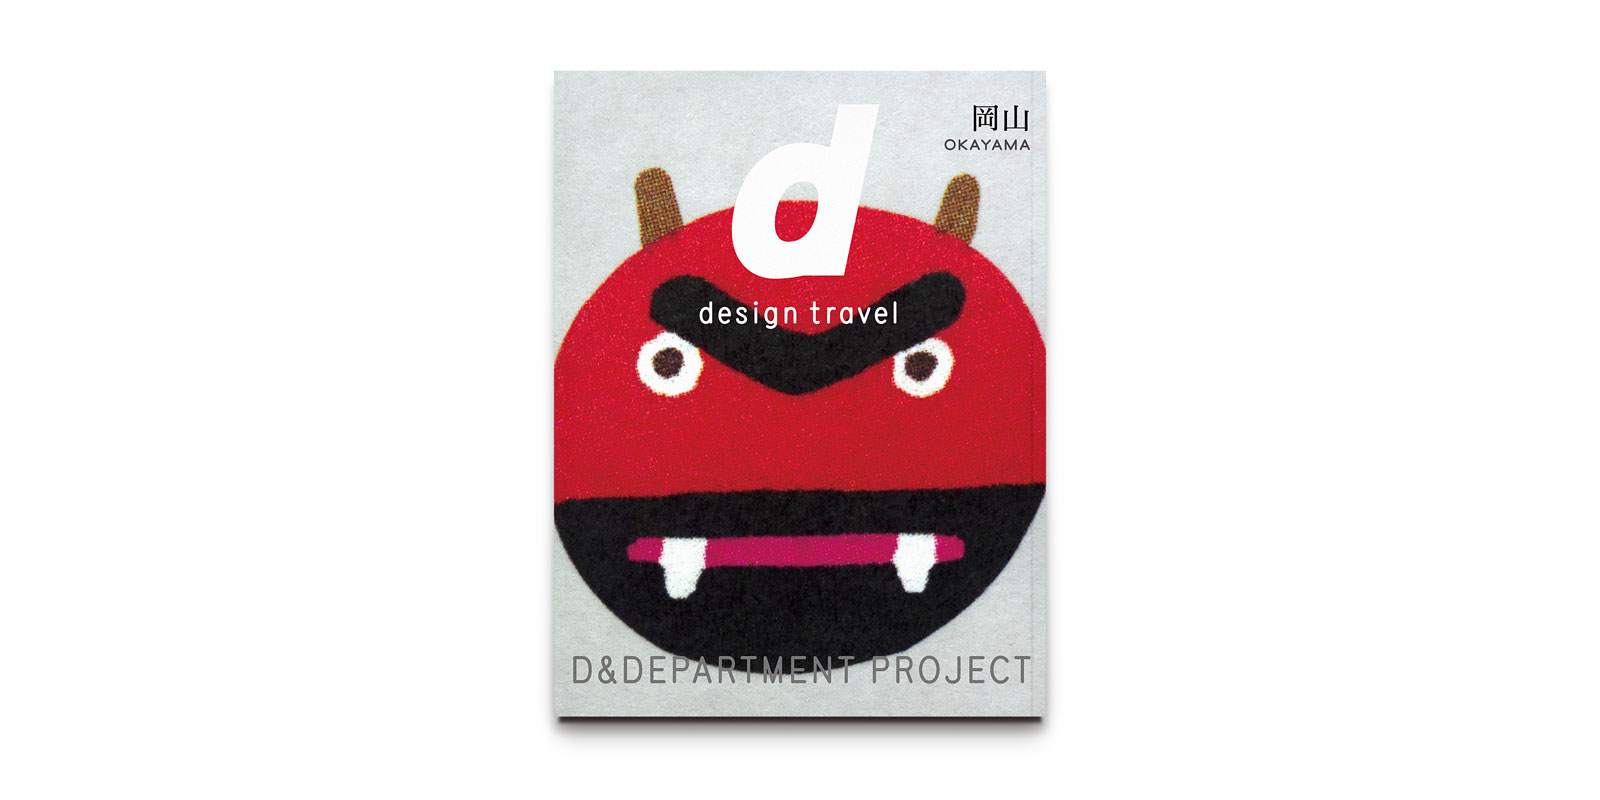 d design travel 岡山